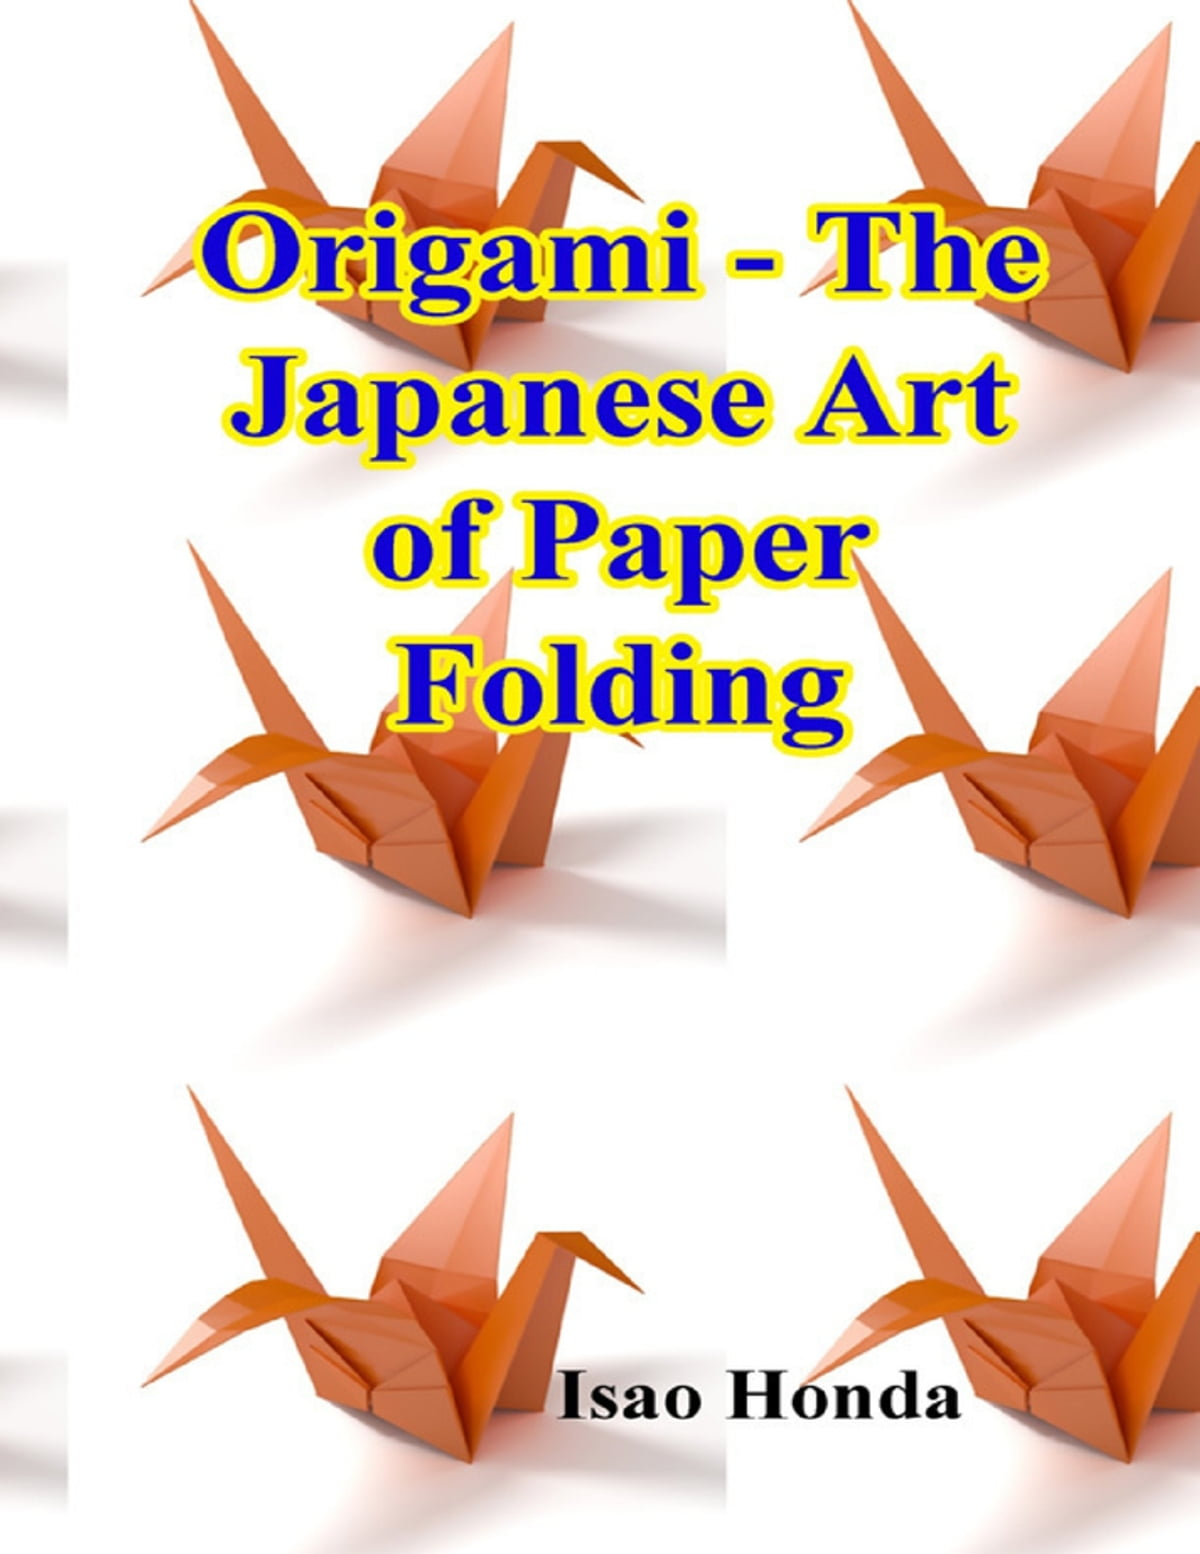 The History Behind Origami – The Art of Paper Folding | 1554x1200